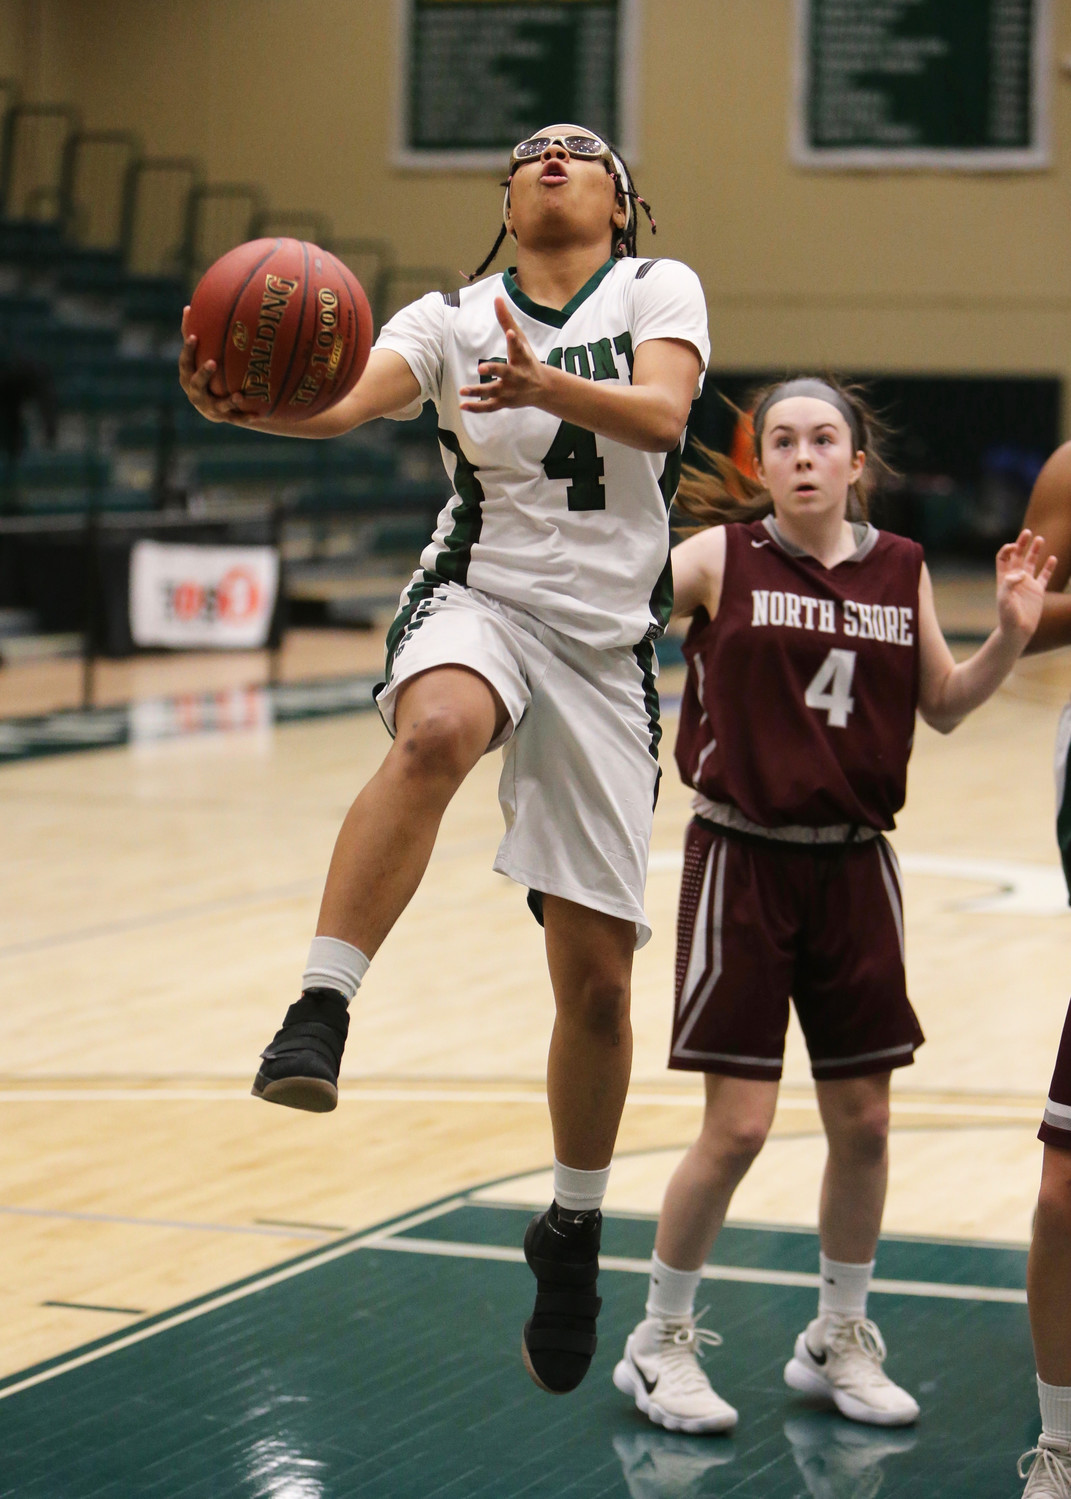 Senior Jada Fernandez exploded for 24 points to lead the Lady Spartans to a second straight Nassau Class A title, 75-44, over North Shore.